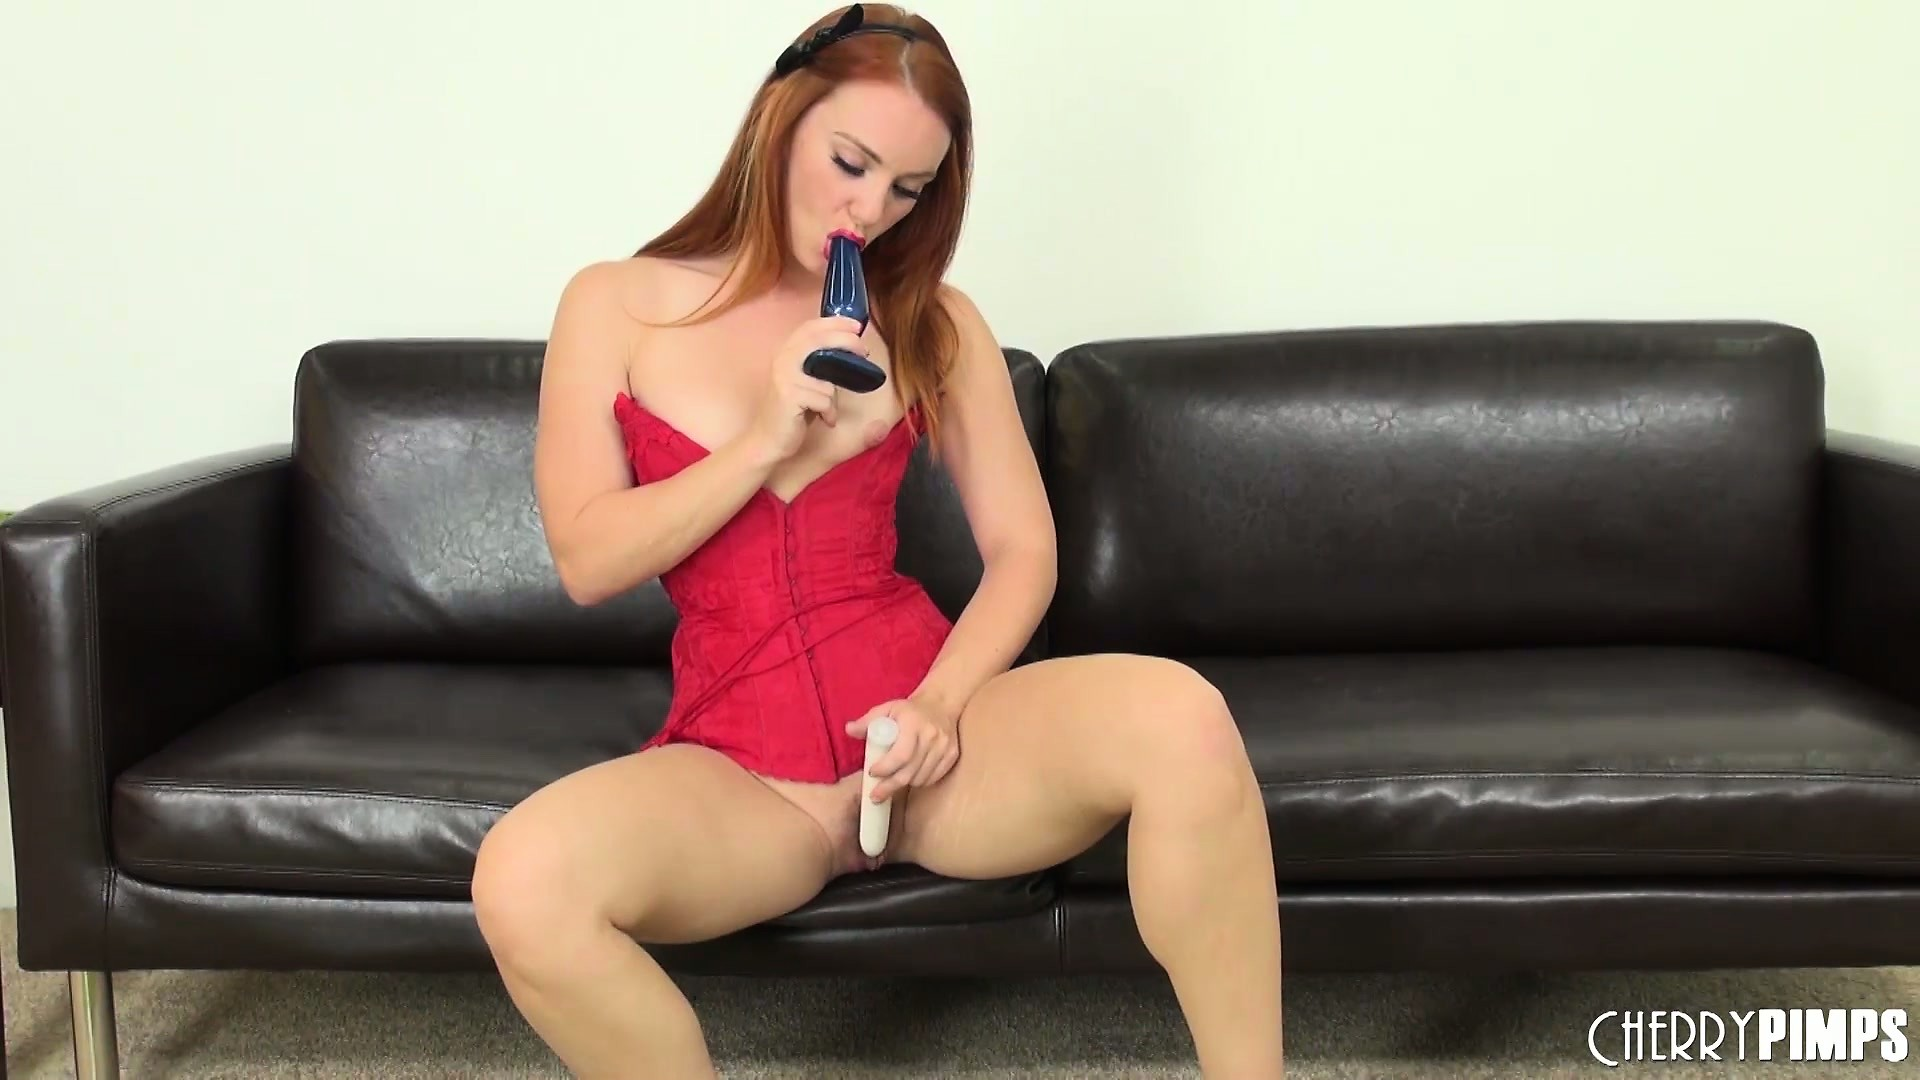 Porno Video of The Redhead Has Two Sex Toys Invading Her Holes And Loves The Pleasure They Provide